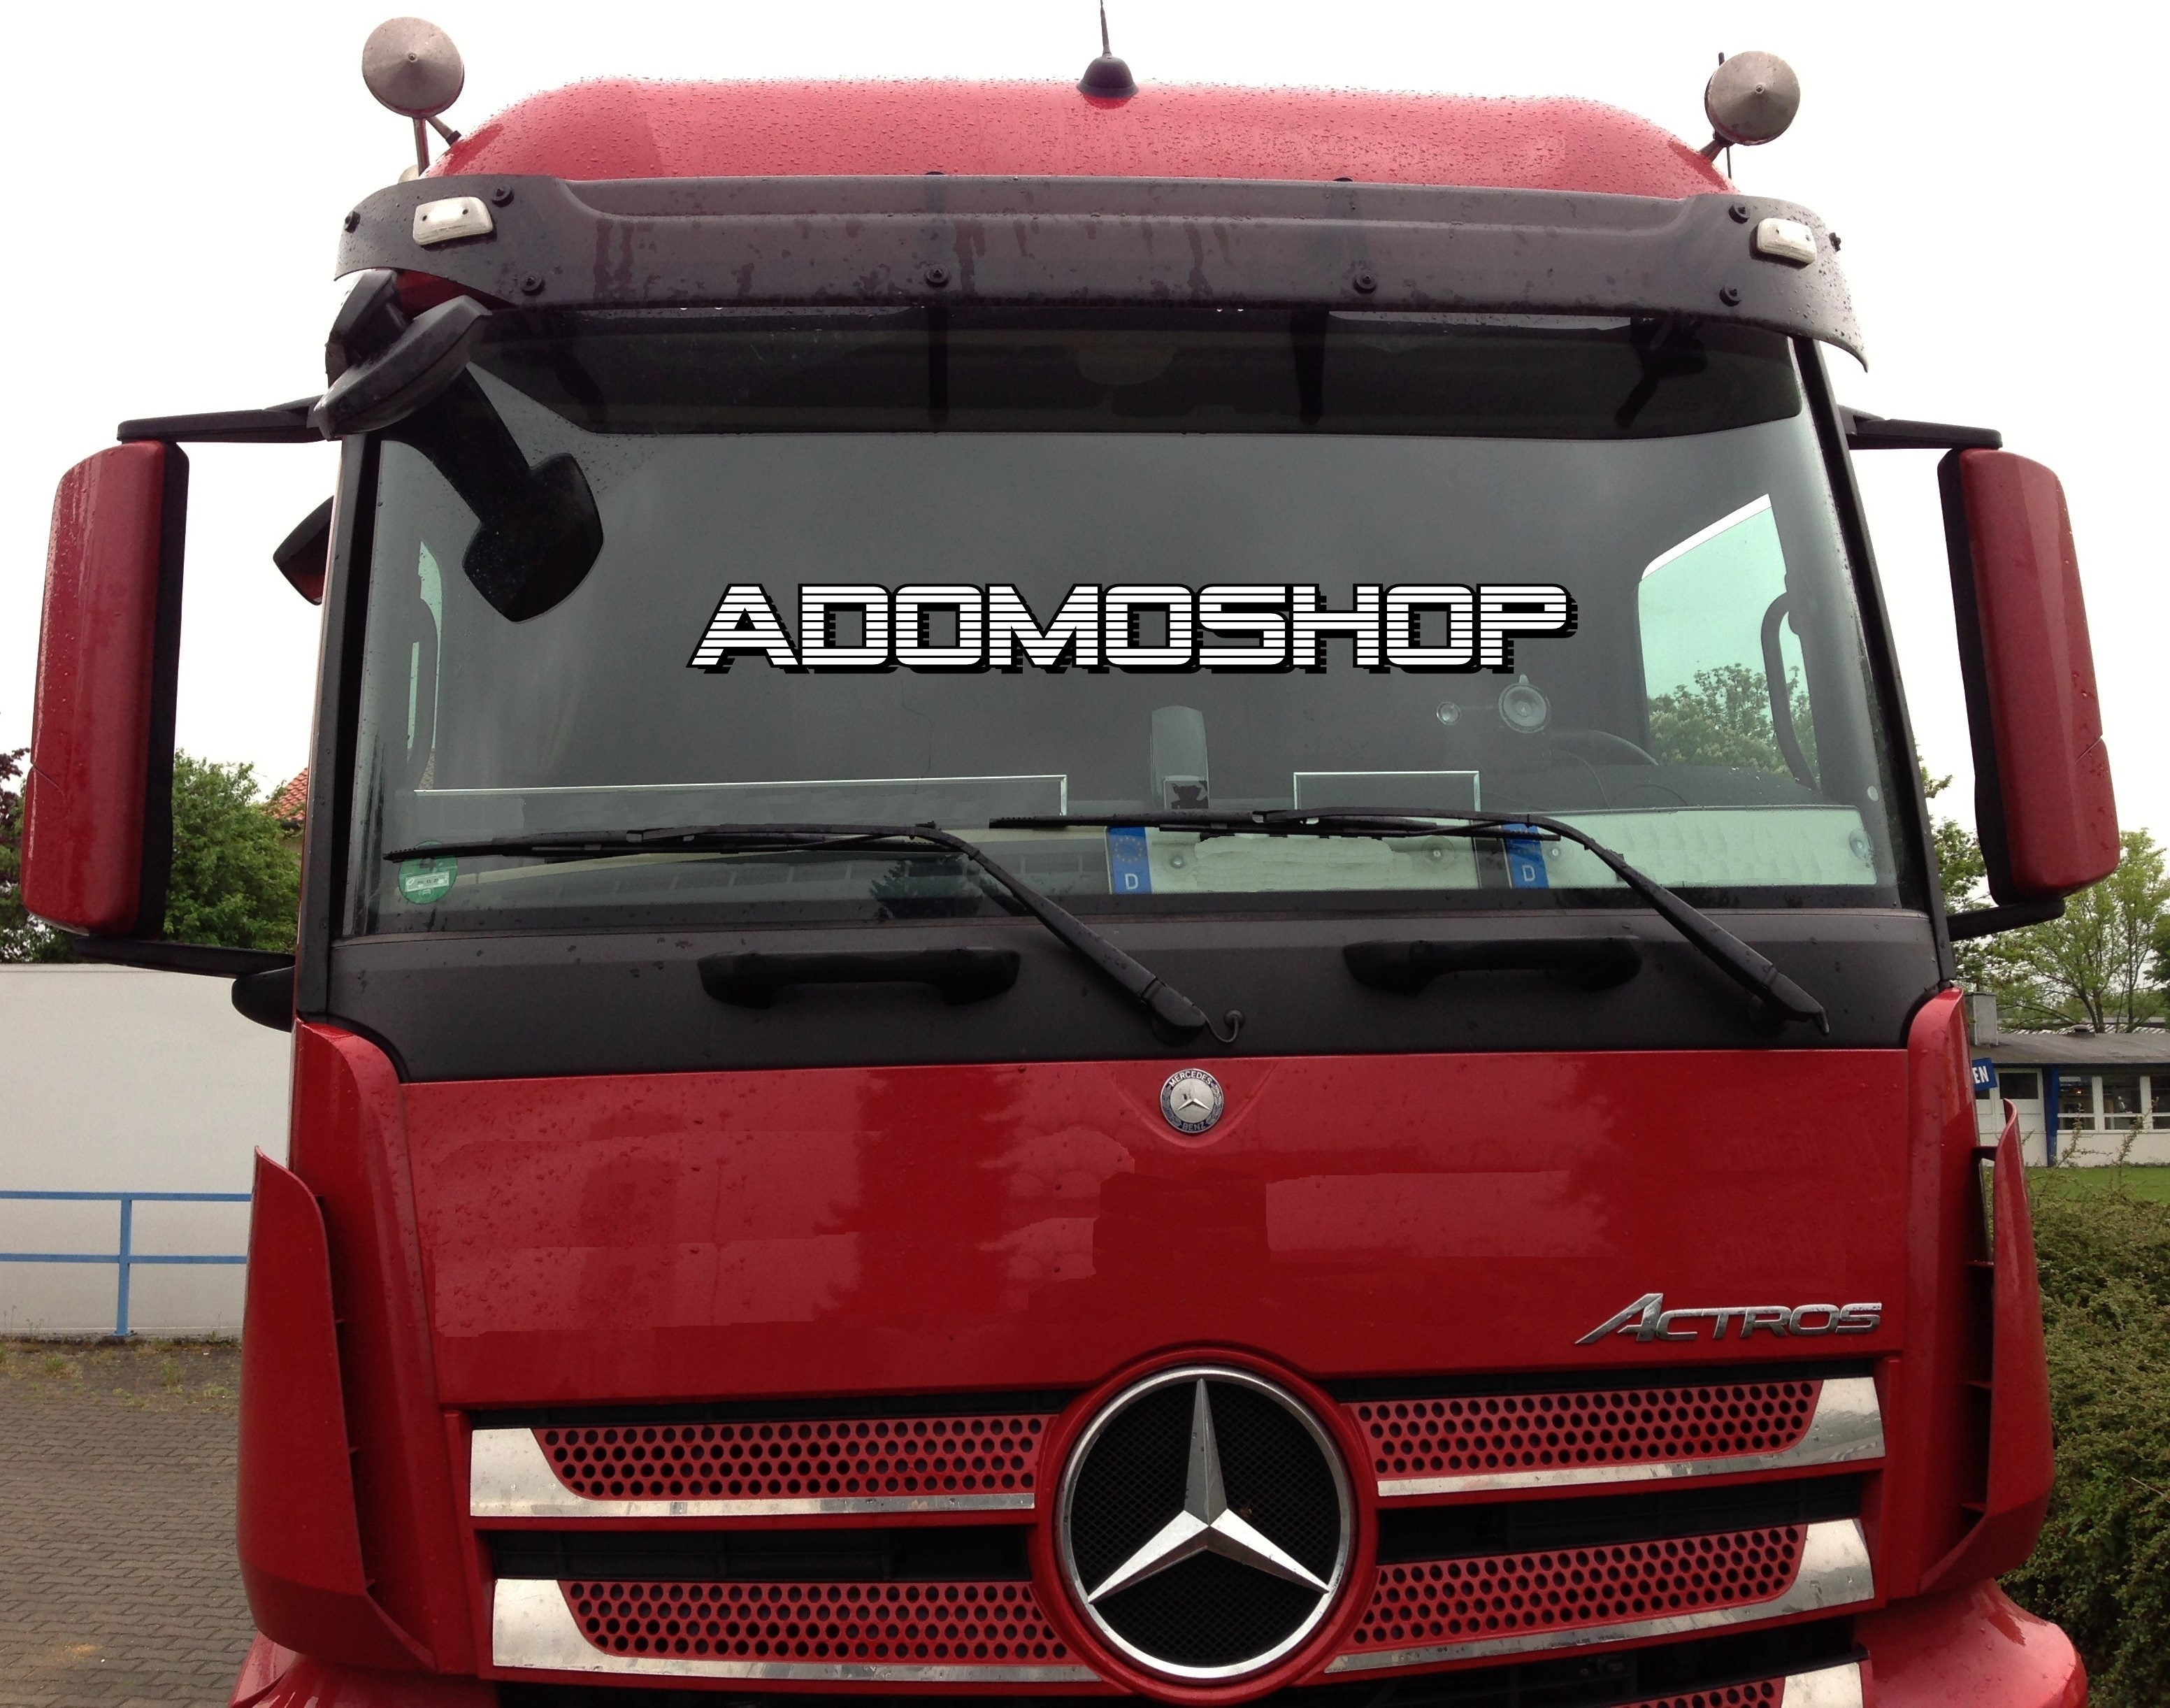 adomo lkw shop ablagetisch f r actros mp4 schmales haus. Black Bedroom Furniture Sets. Home Design Ideas